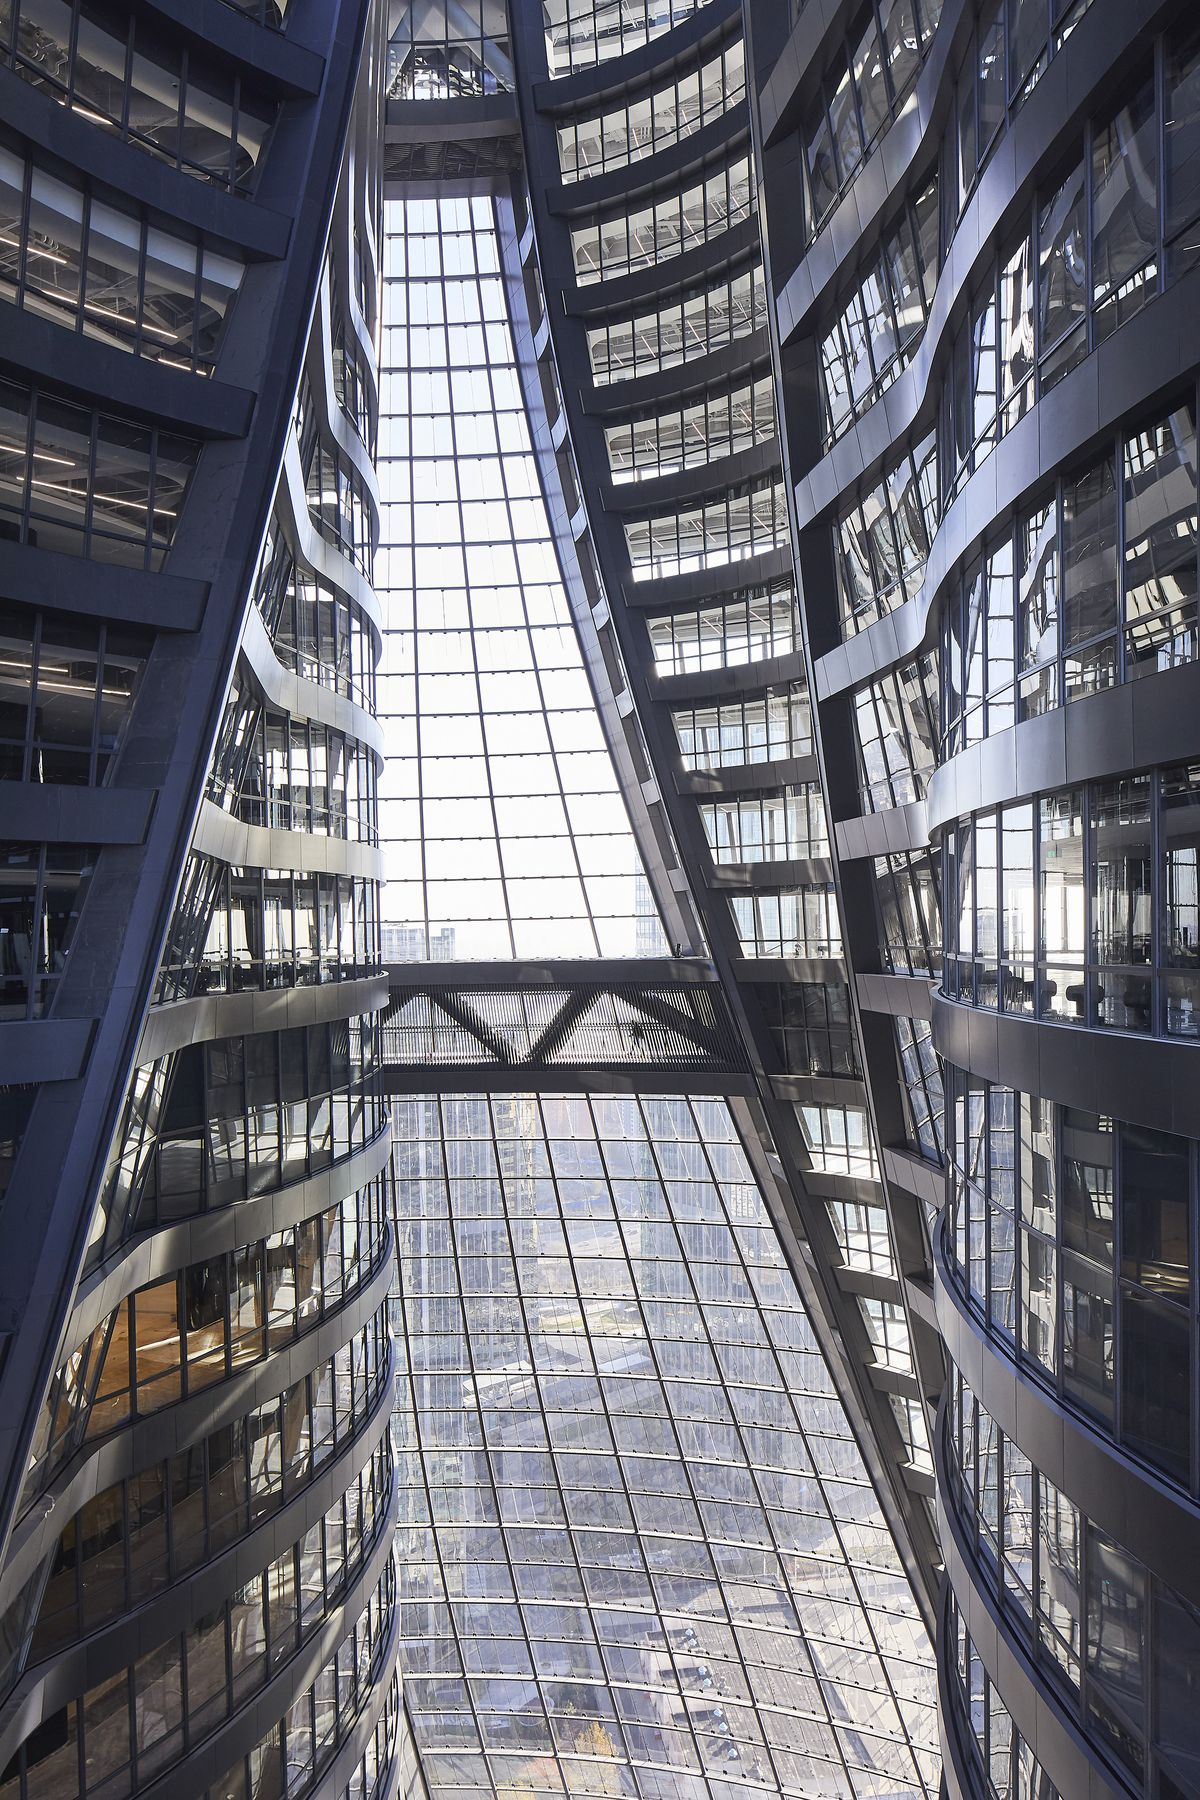 Dramatic, all-glass atrium in a tower.